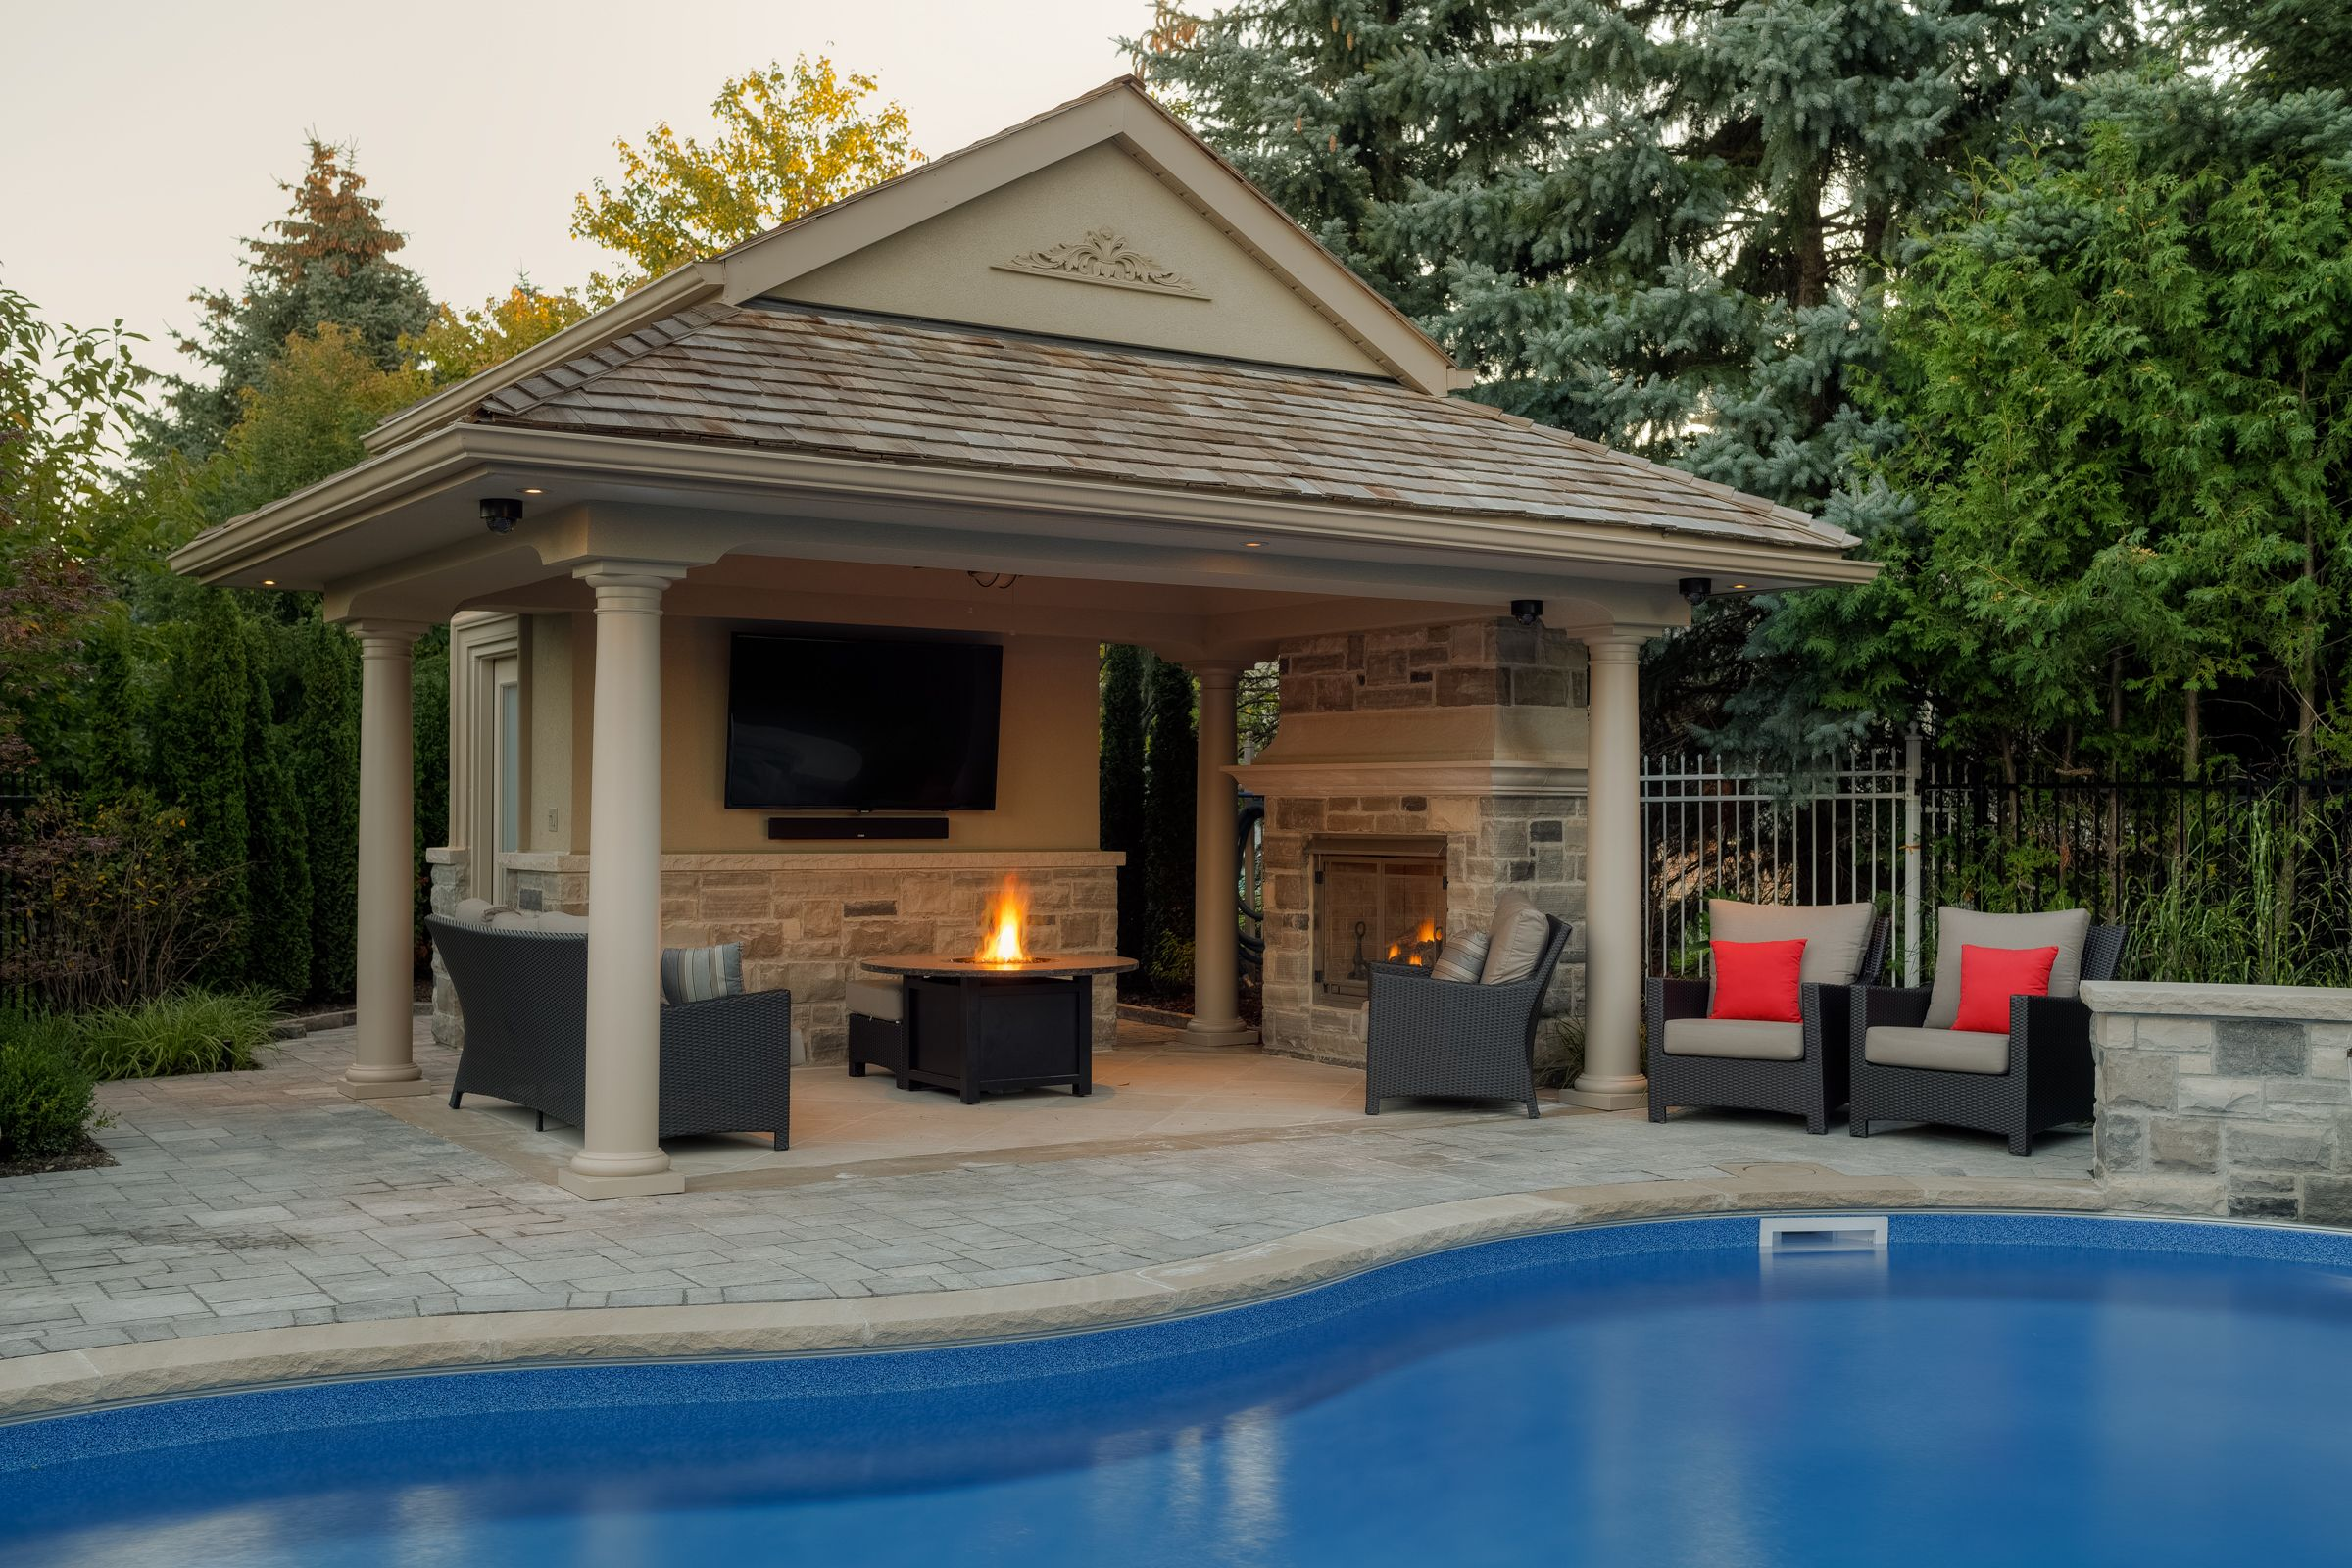 pool pool ideas backyard ideas cabana ideas outdoor buildings pool